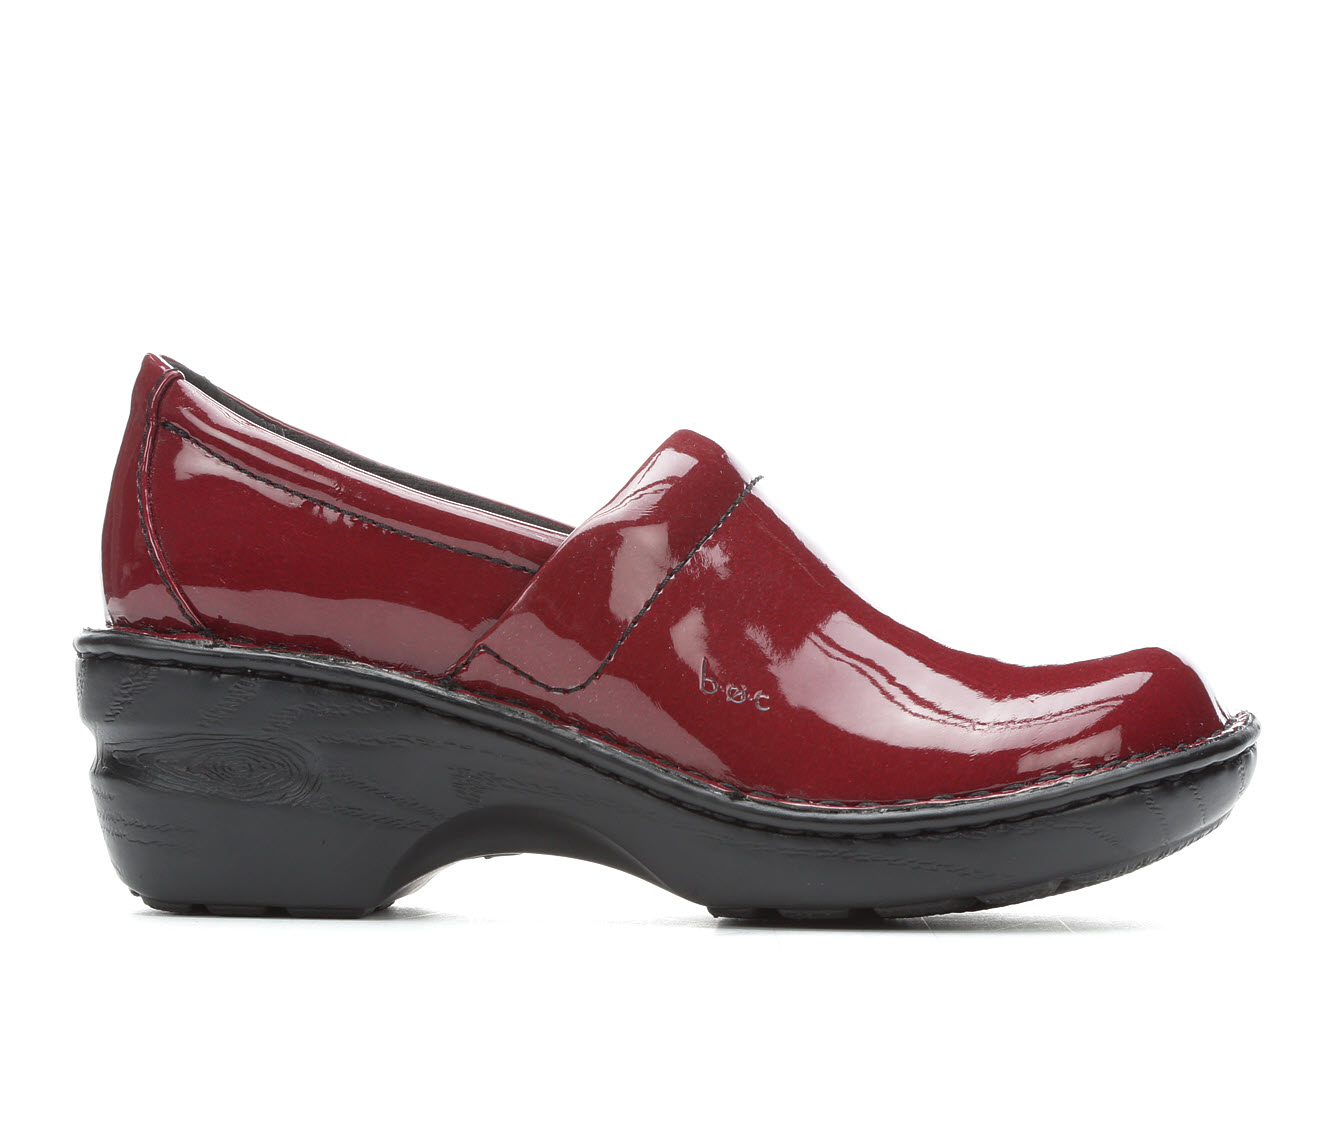 B.O.C. Peggy Women's Shoe (Red Faux Leather)